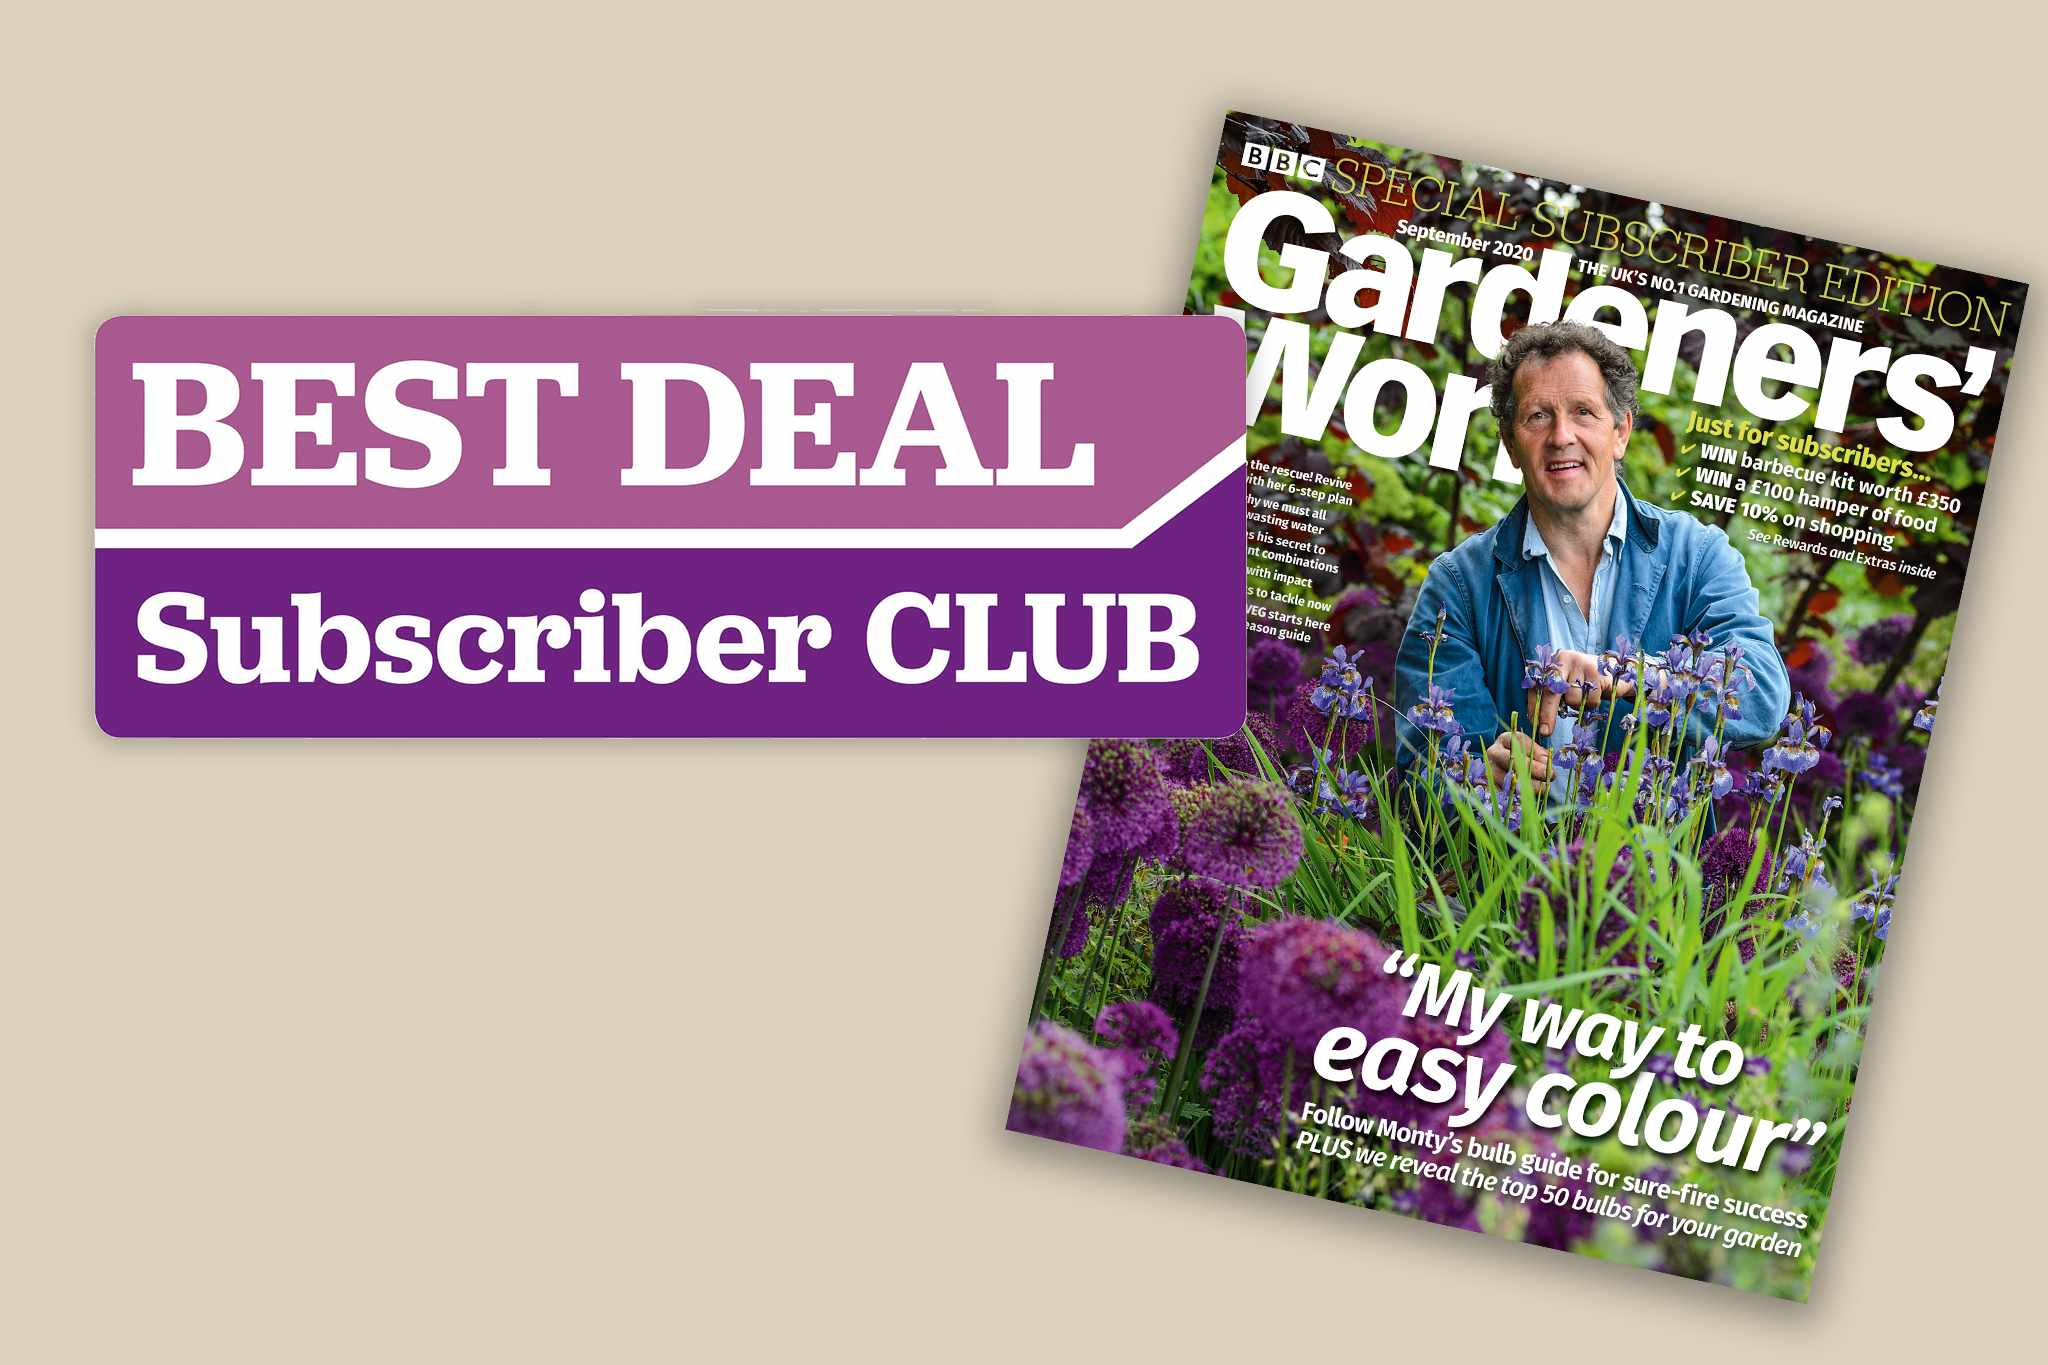 Subscriber September issue, save on Subscriber Club offers